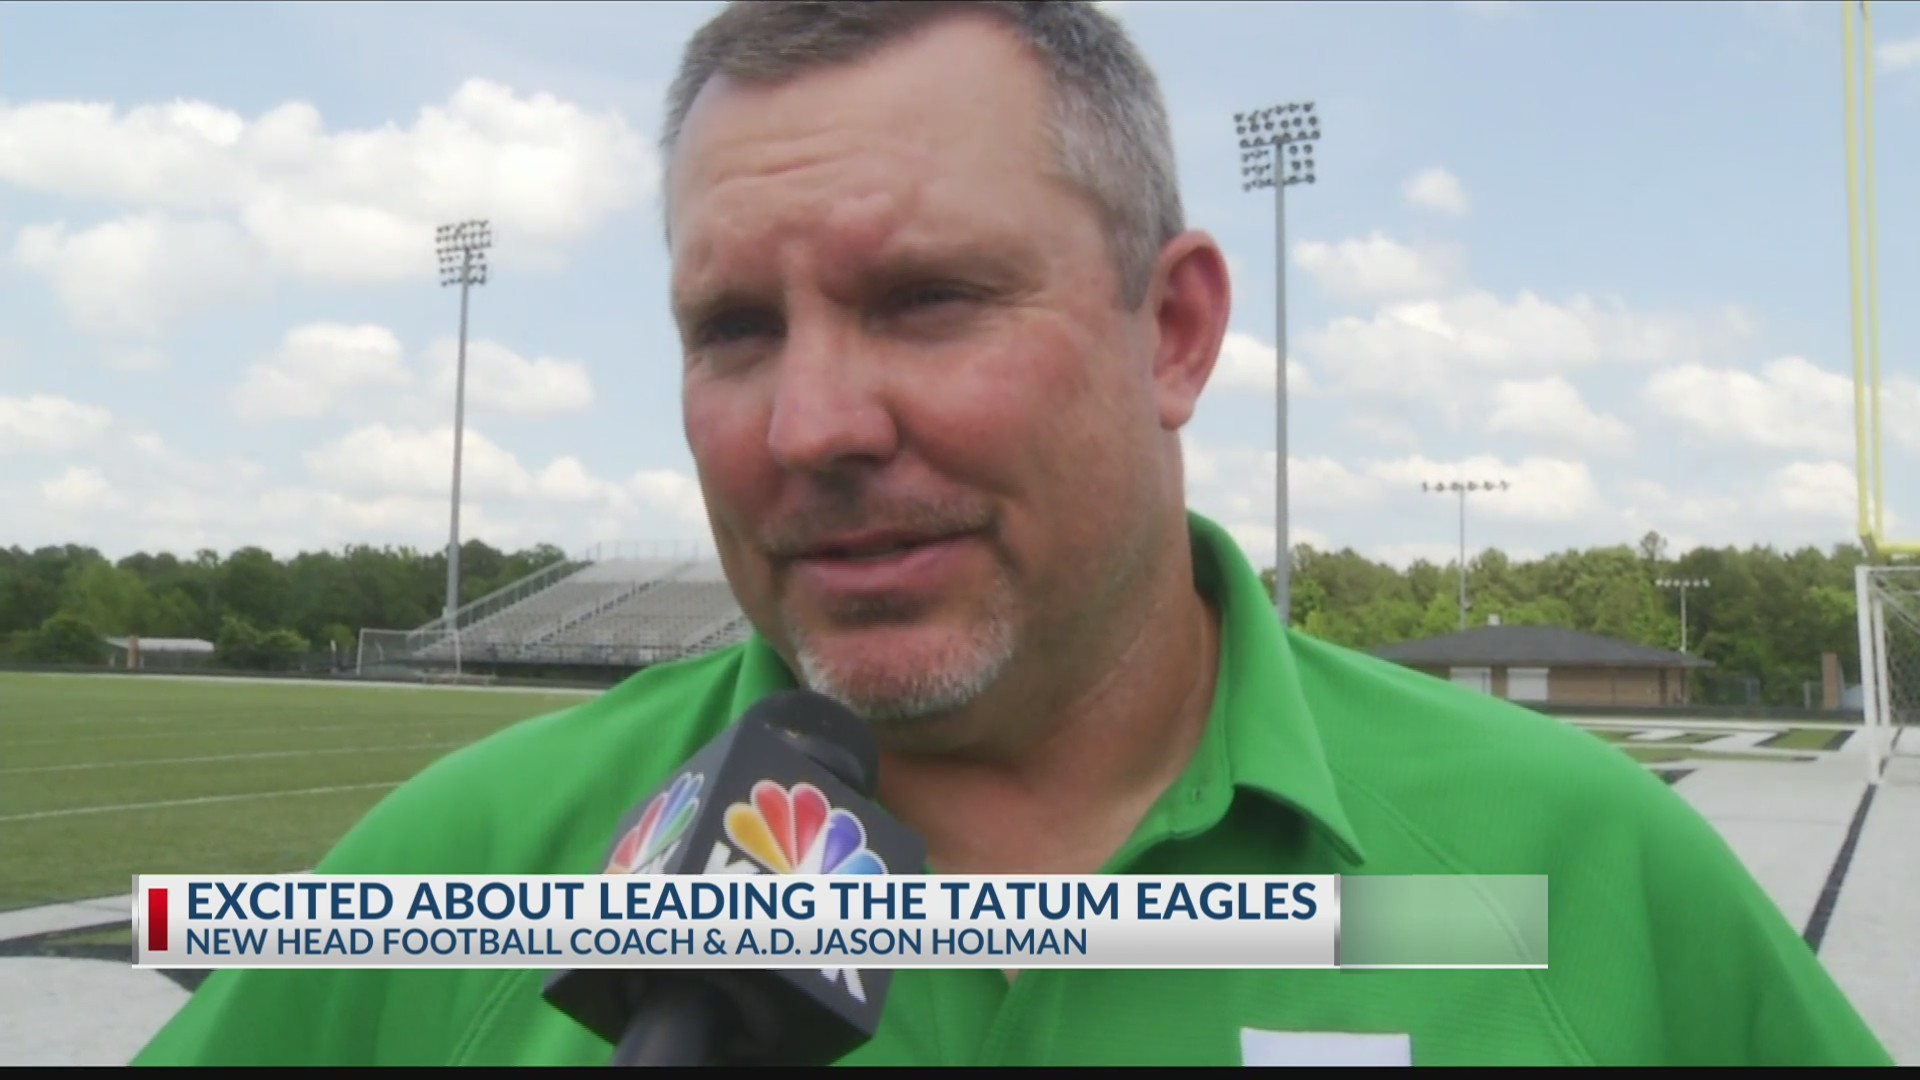 New_Tatum_football_coach_Jason_Holman_wa_0_20190508041701